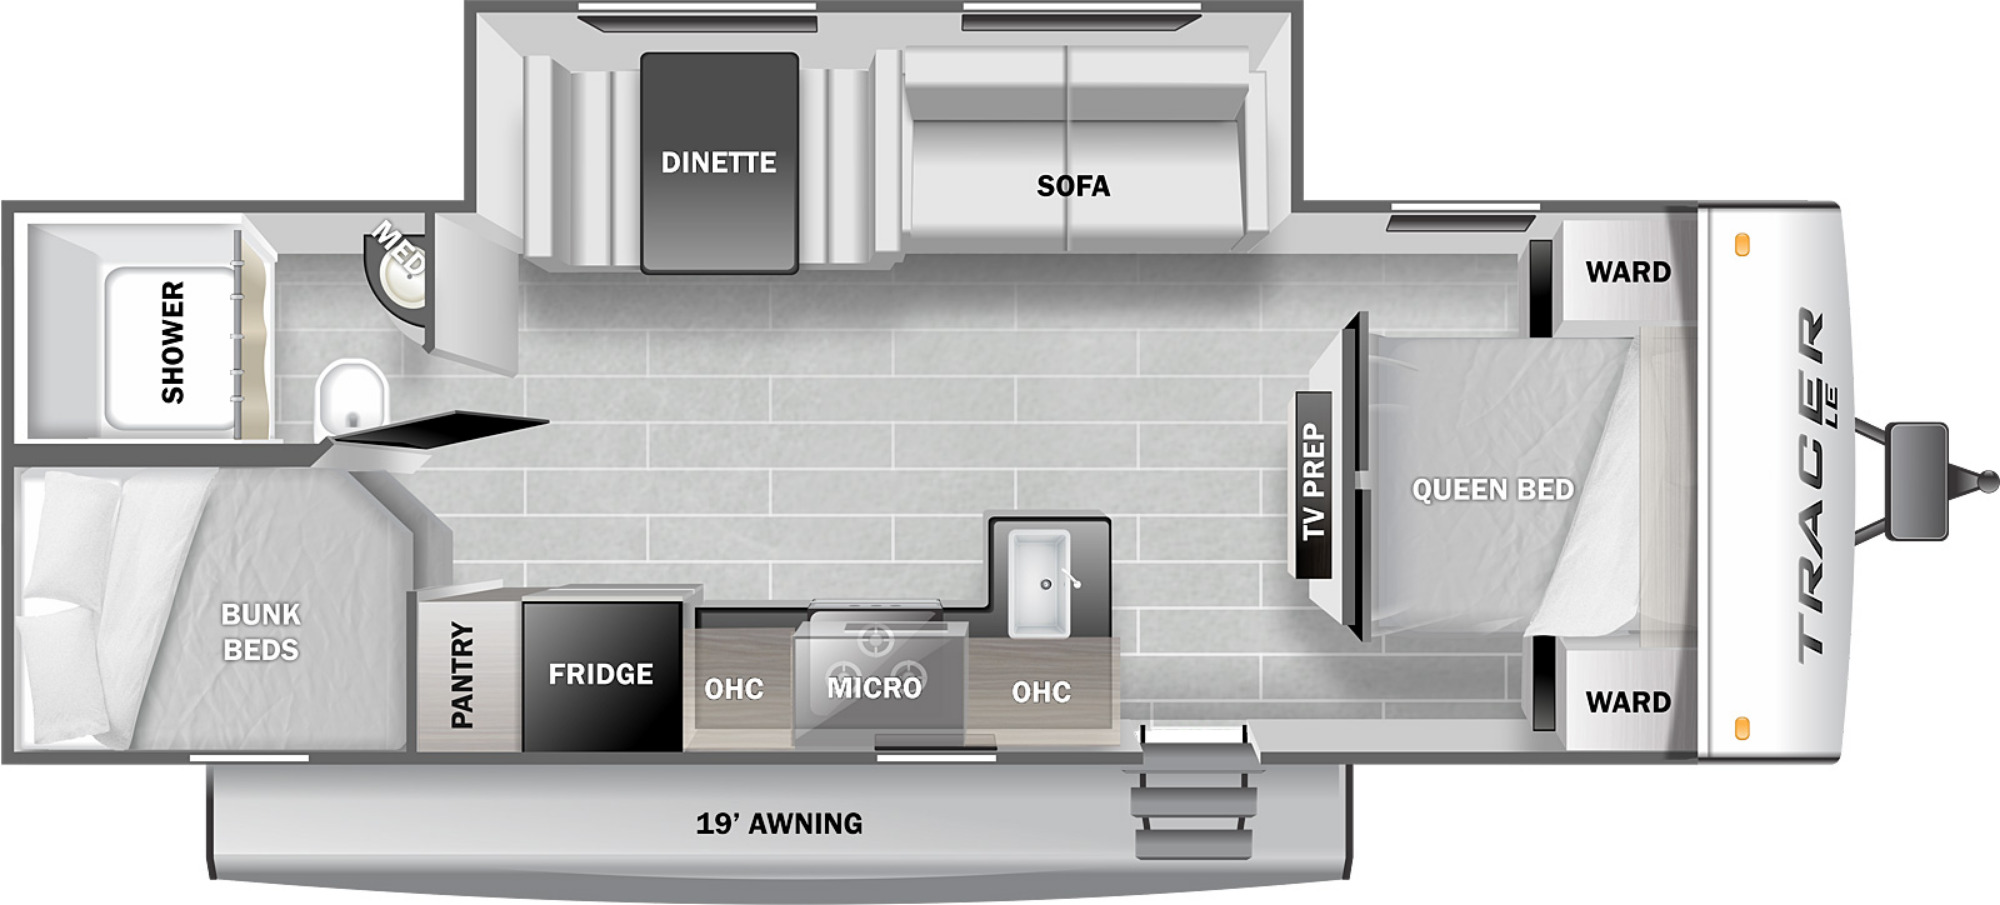 View Floor Plan for 2022 PRIME TIME TRACER 260BHSLE